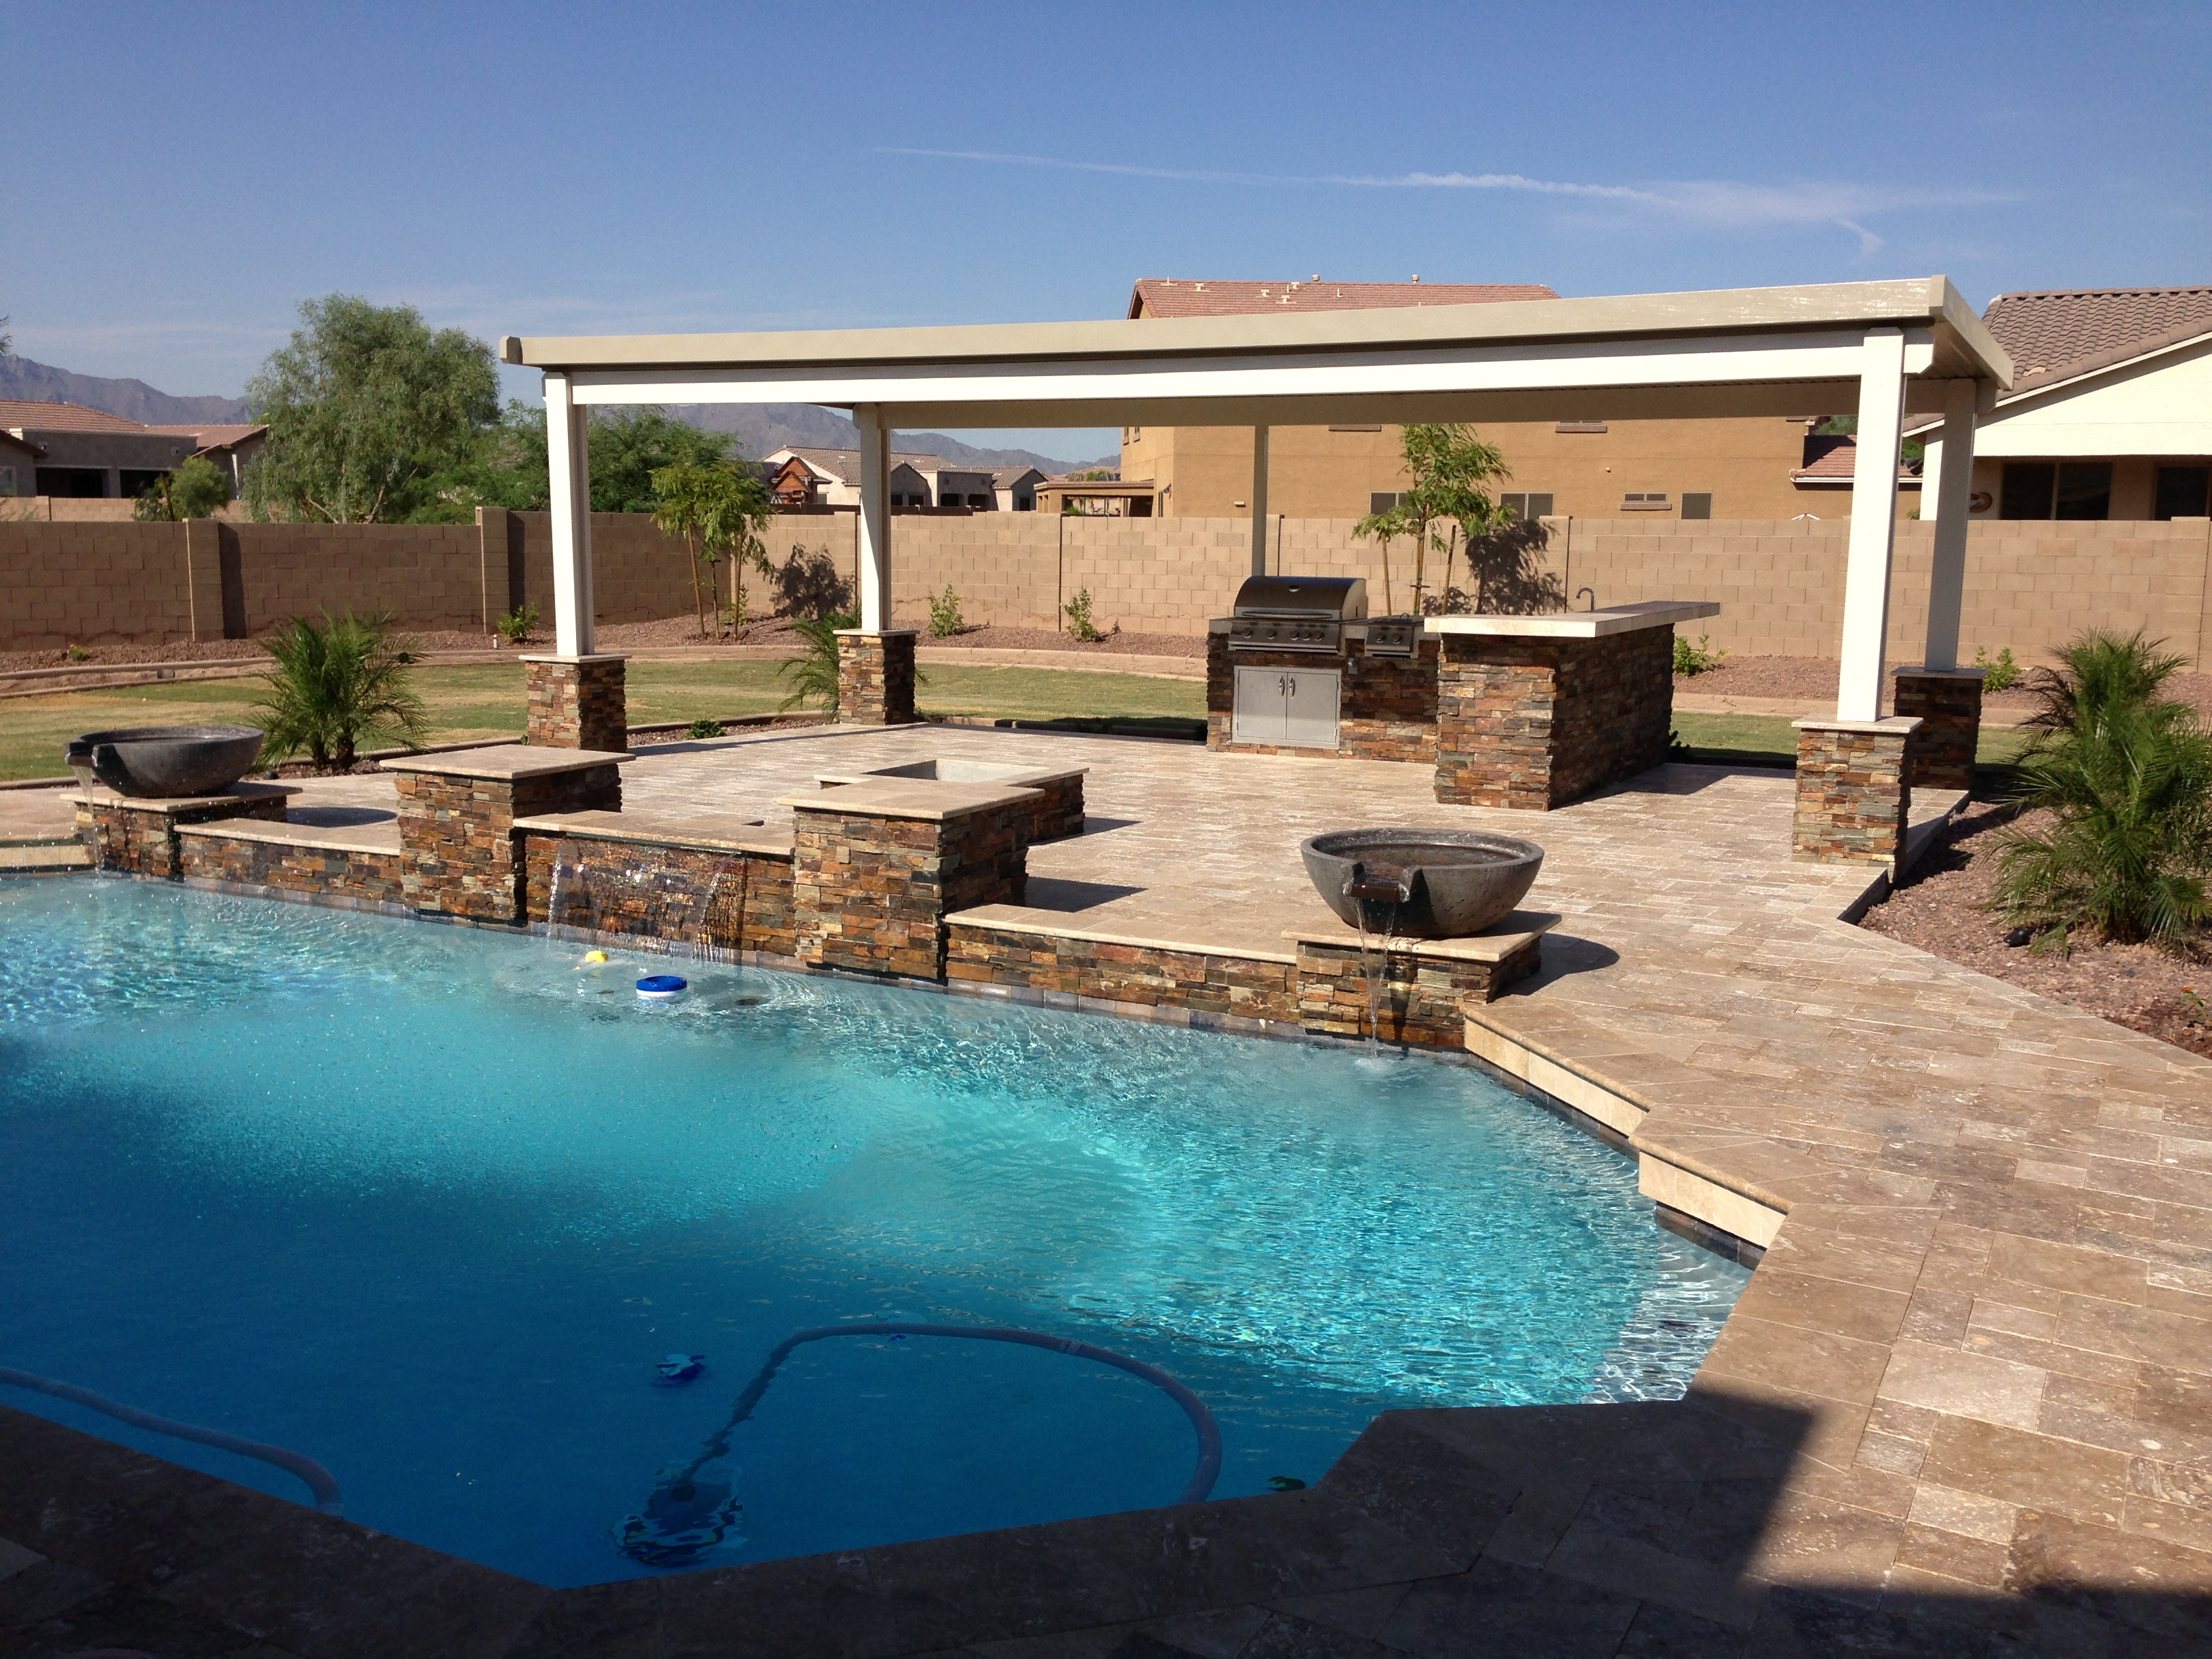 Arizona Landscape Outdoor Living At Itu0027s Best!